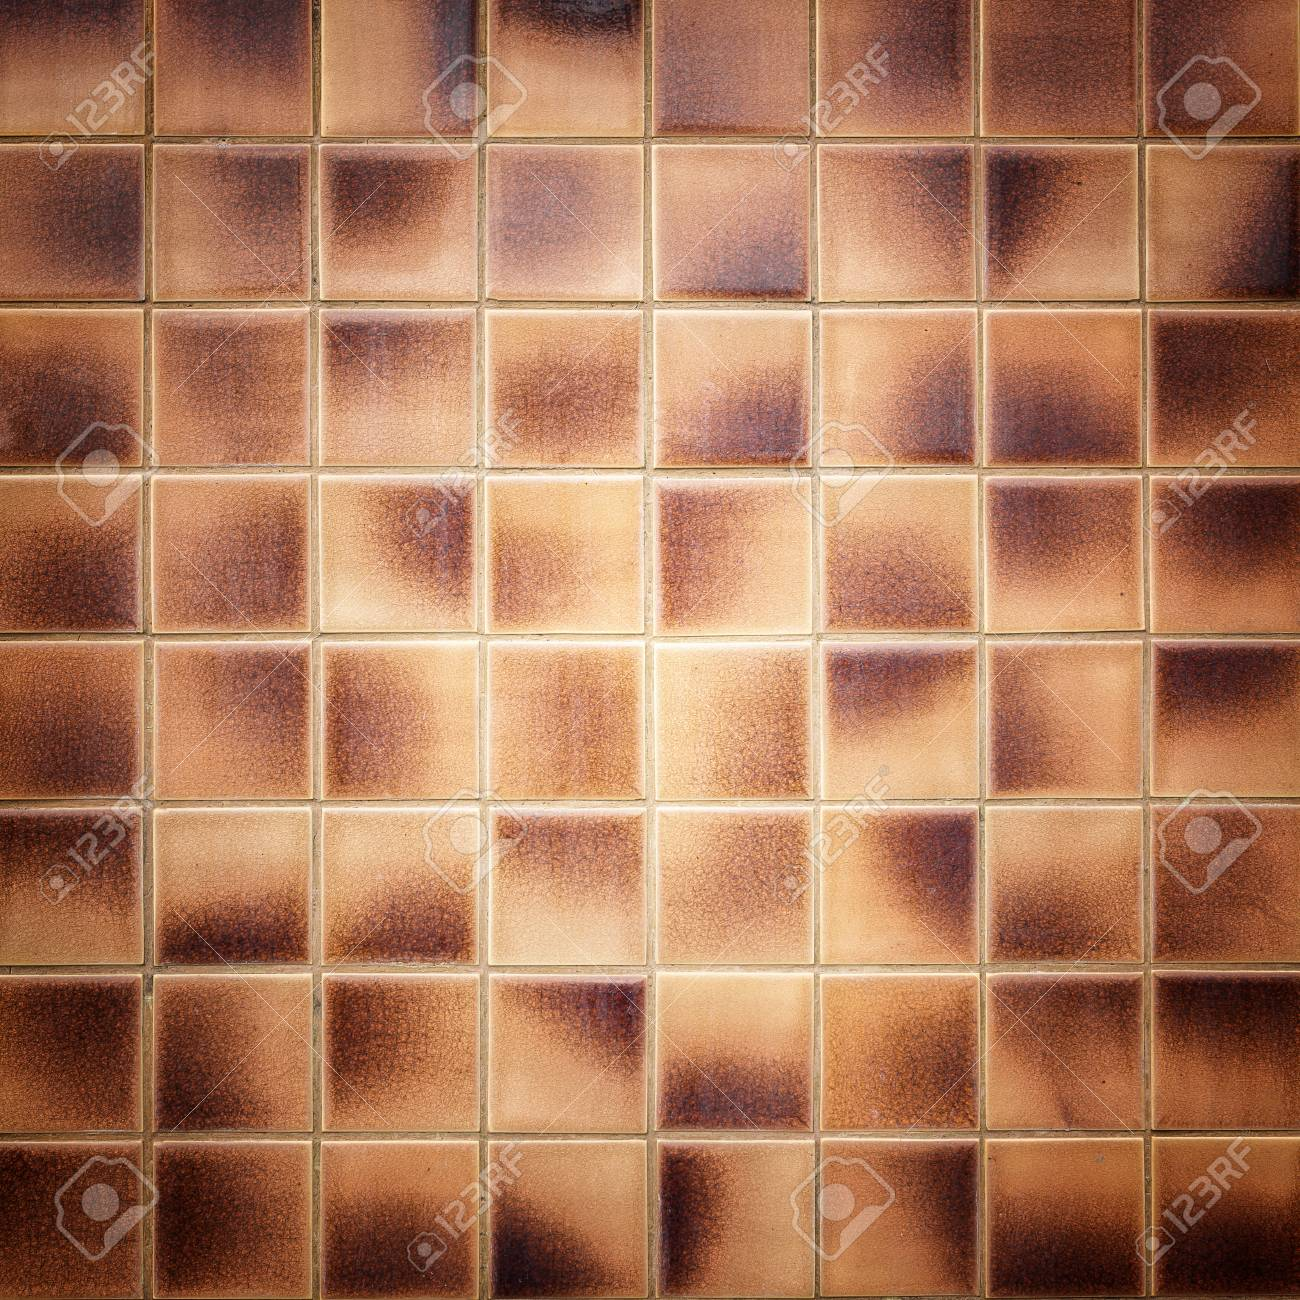 Close Up Old Pattern Brown Ceramic Bathroom Wall Tile Texture Stock Photo Picture And Royalty Free Image Image 42906816